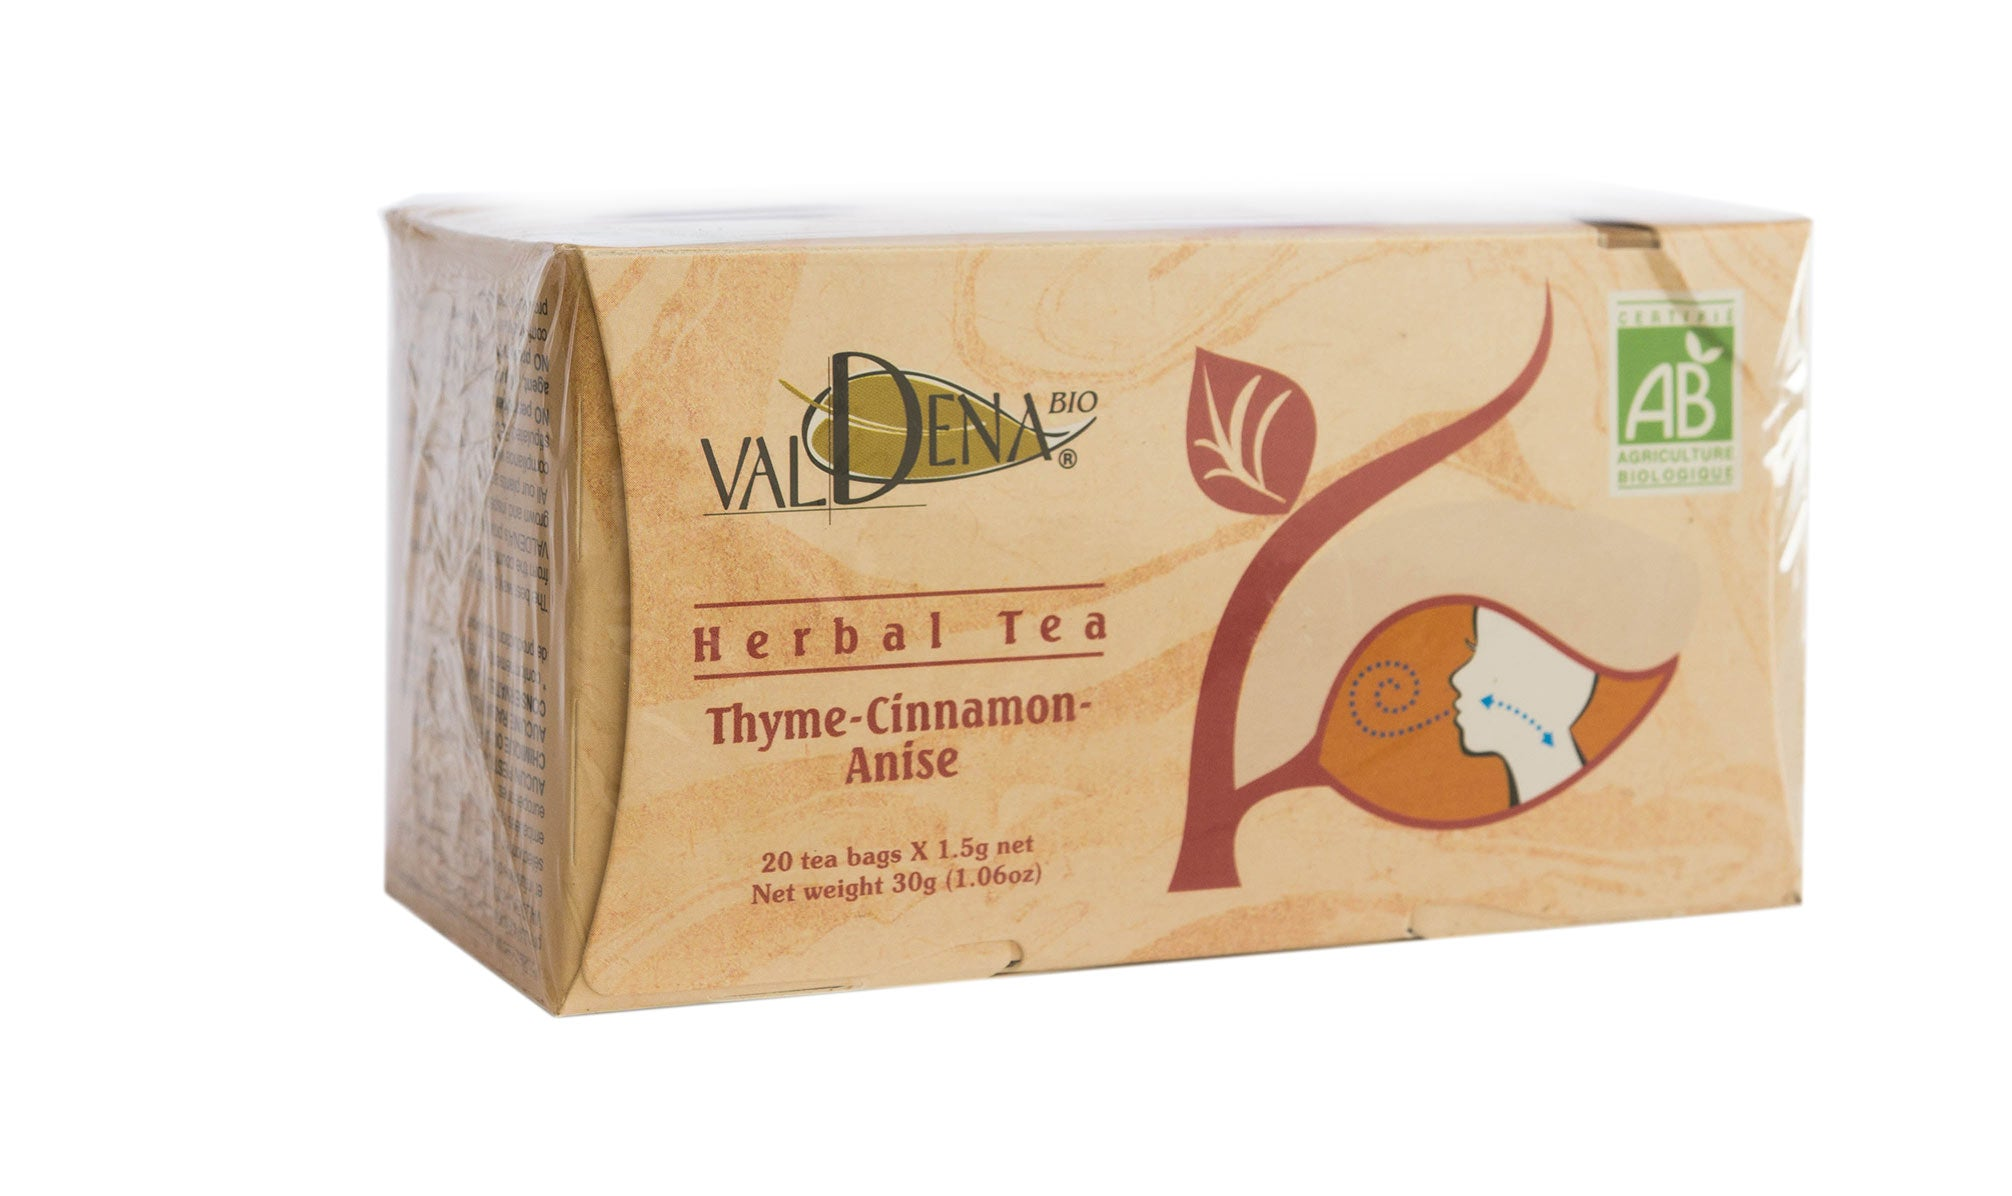 Thyme, Cinnamon, and Anise Tea - Blessed Buy Israel